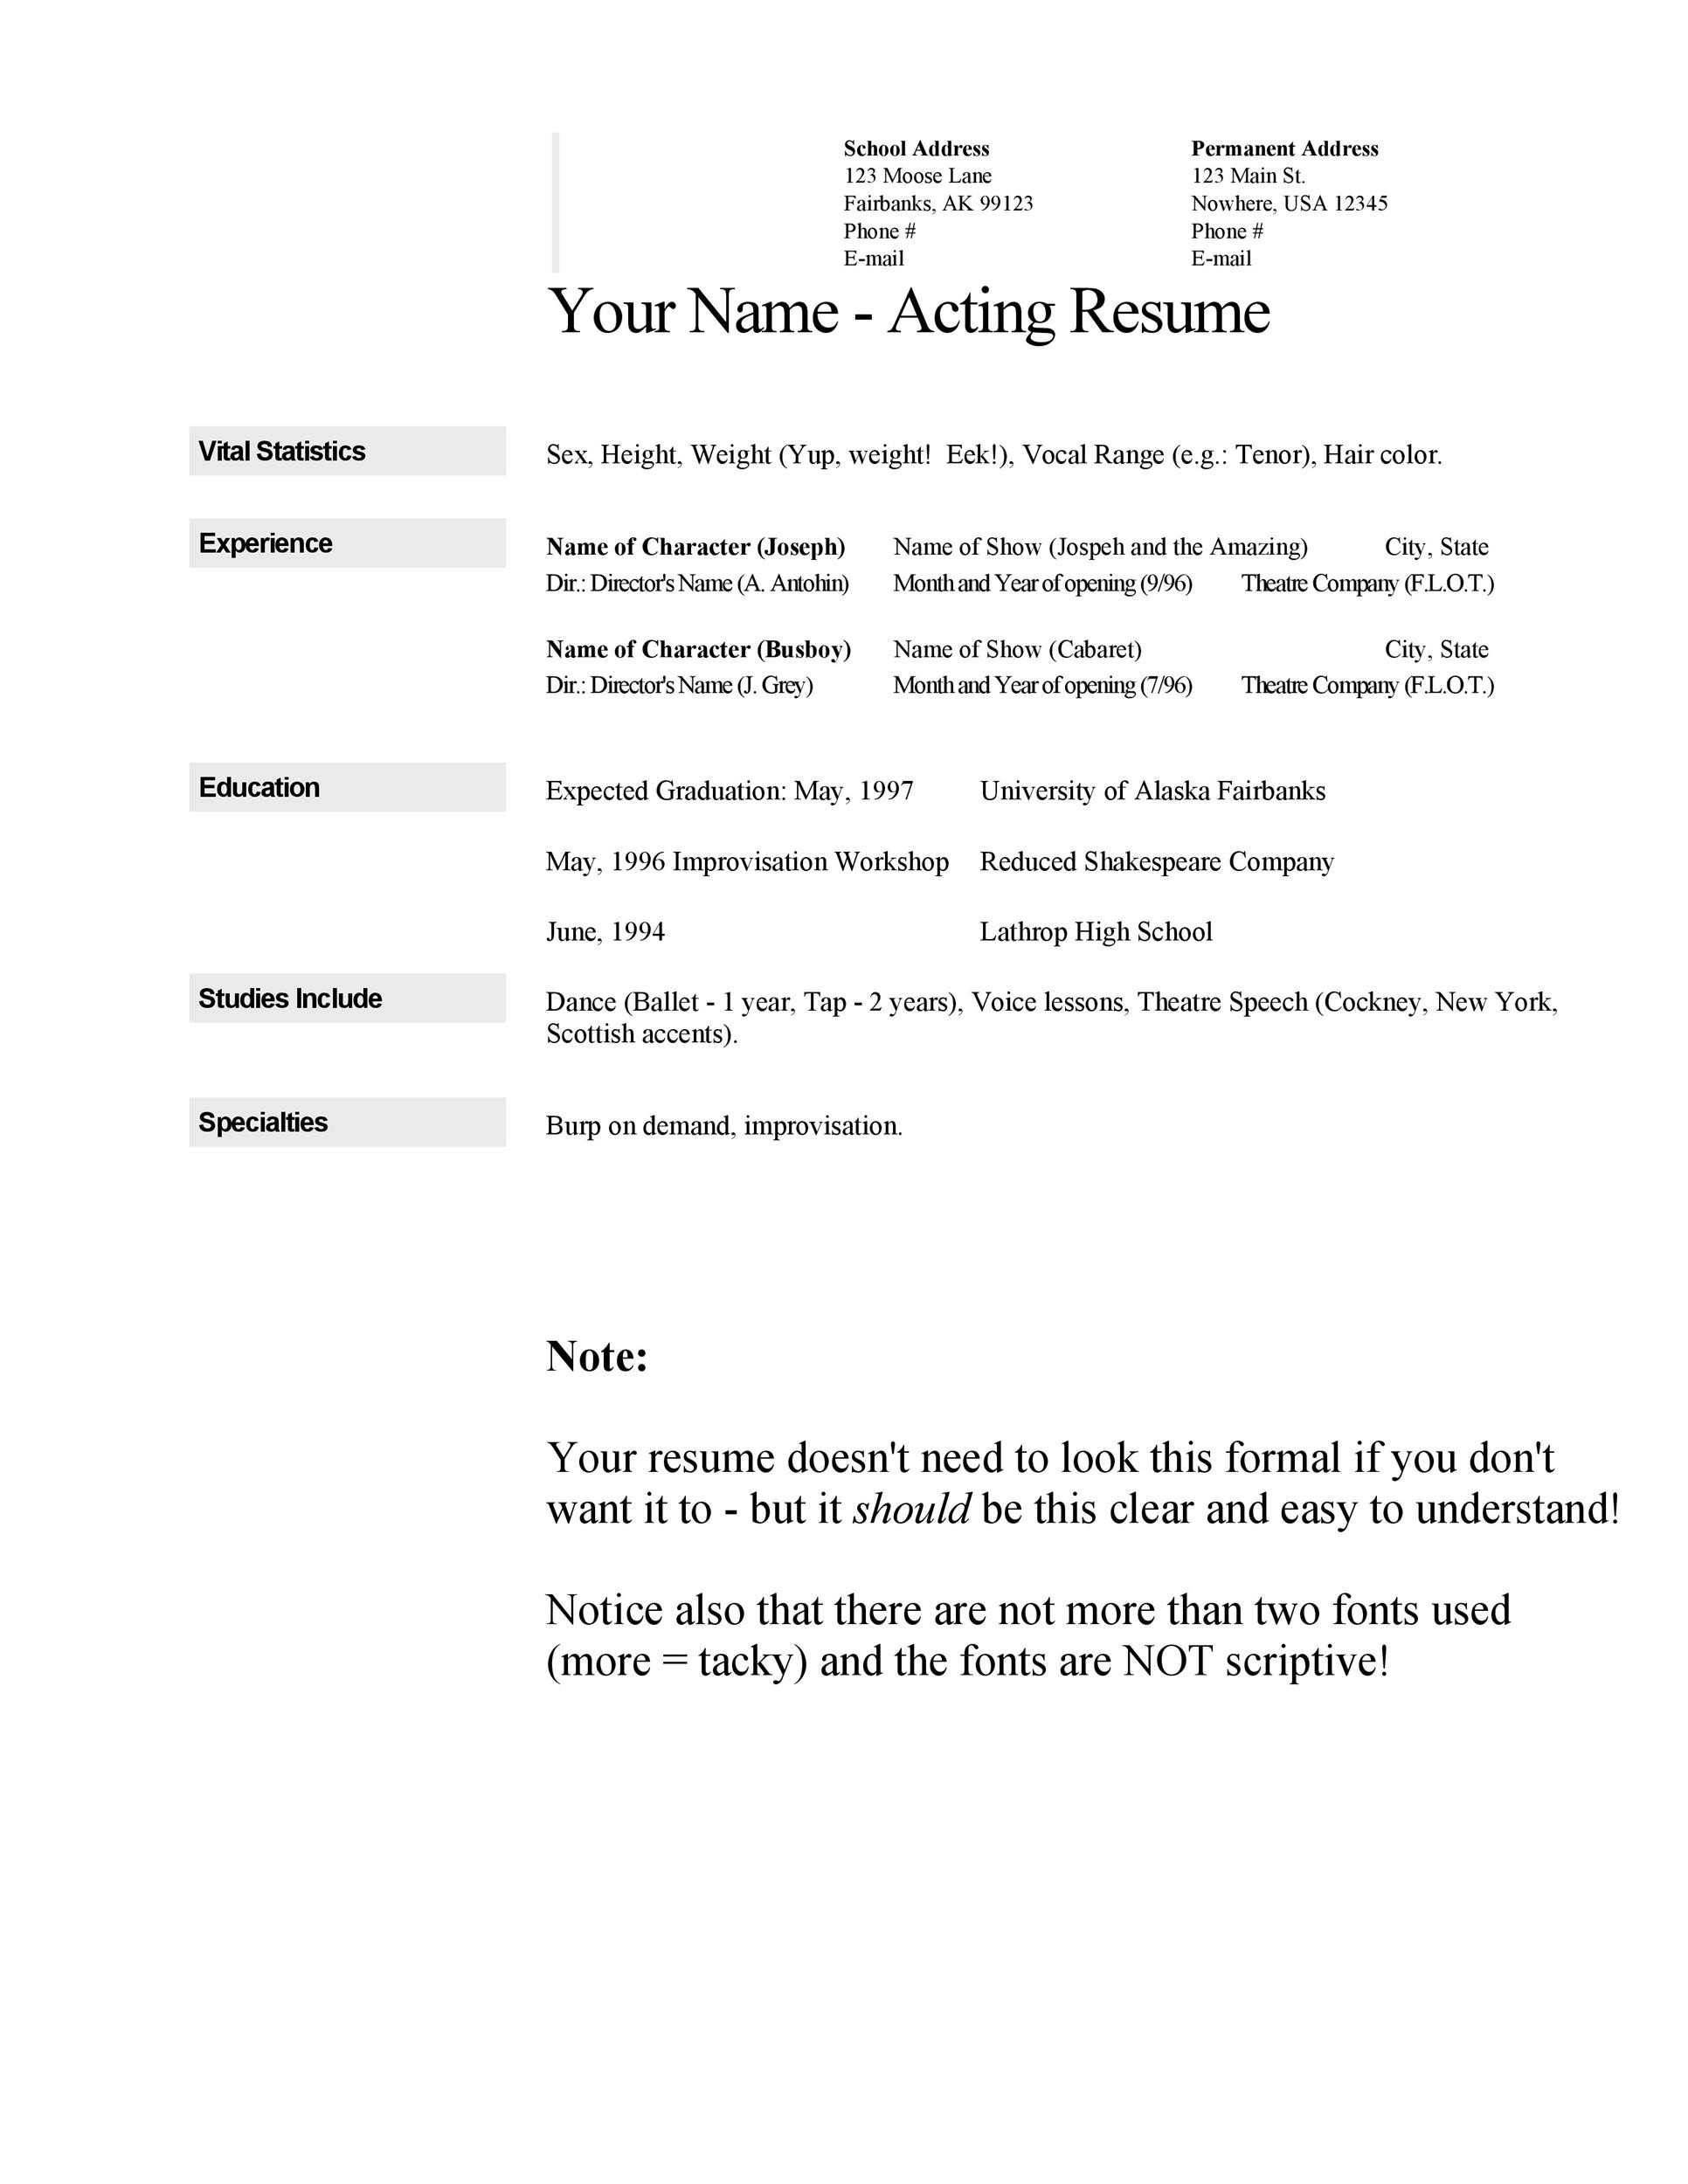 Free acting resume template 10